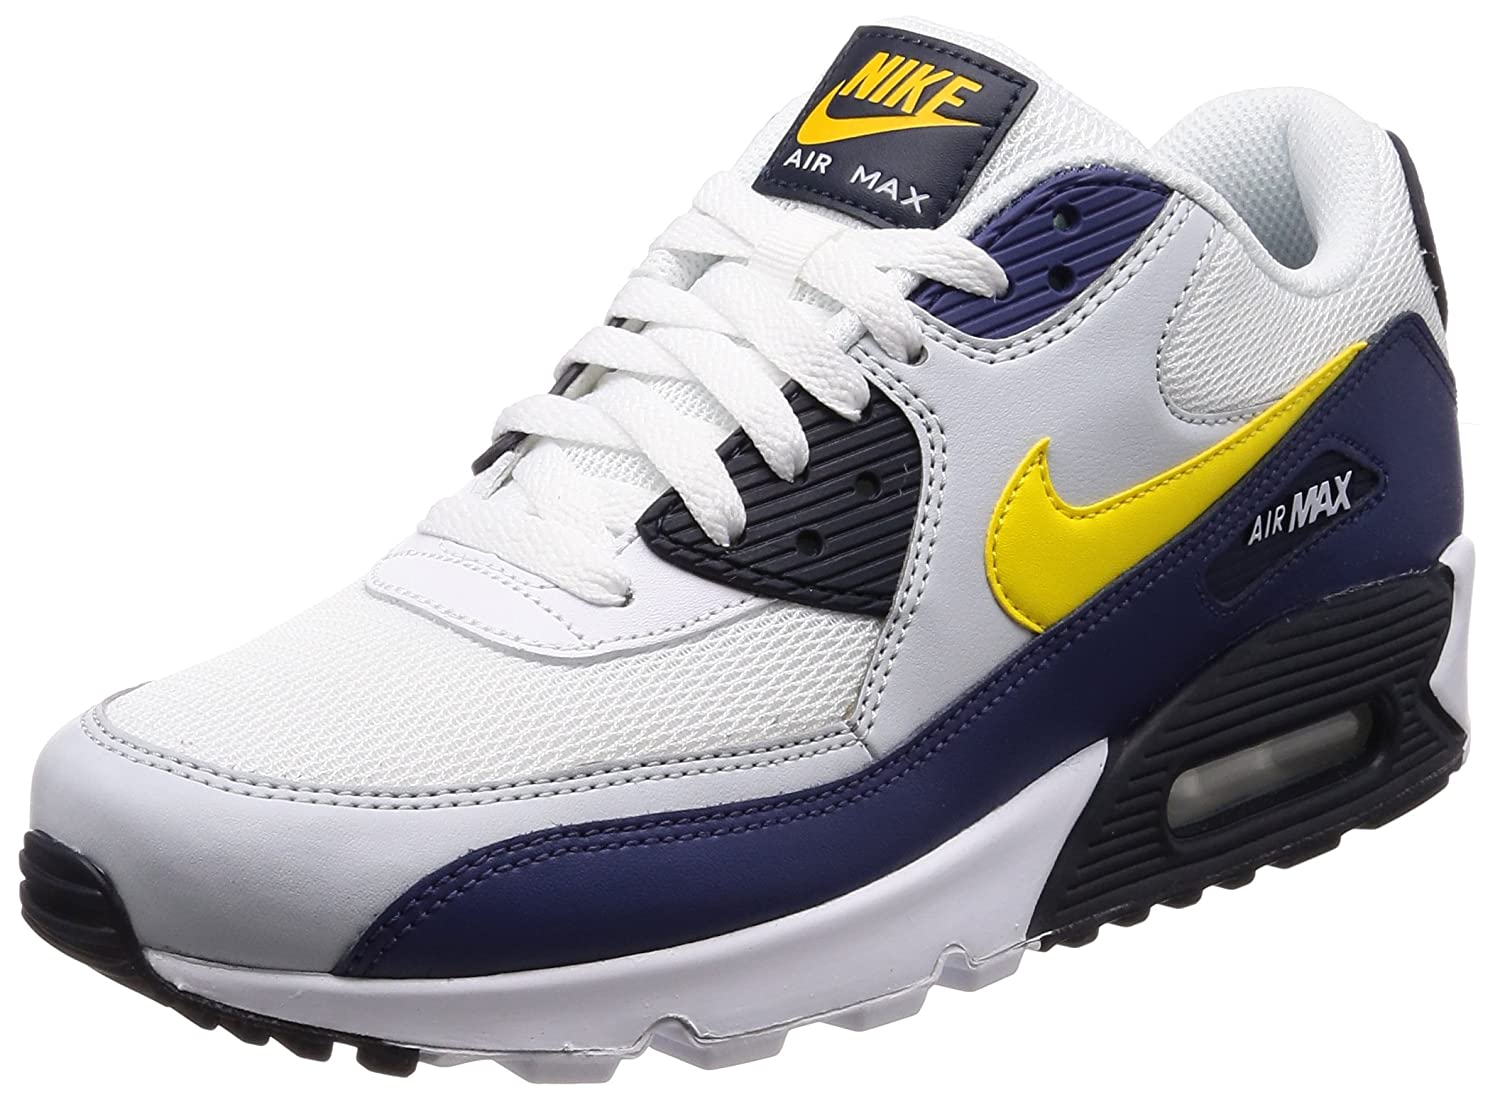 811d03f798a1 Nike Men s Air Max Lunar 90 Trainers  Amazon.co.uk  Shoes   Bags